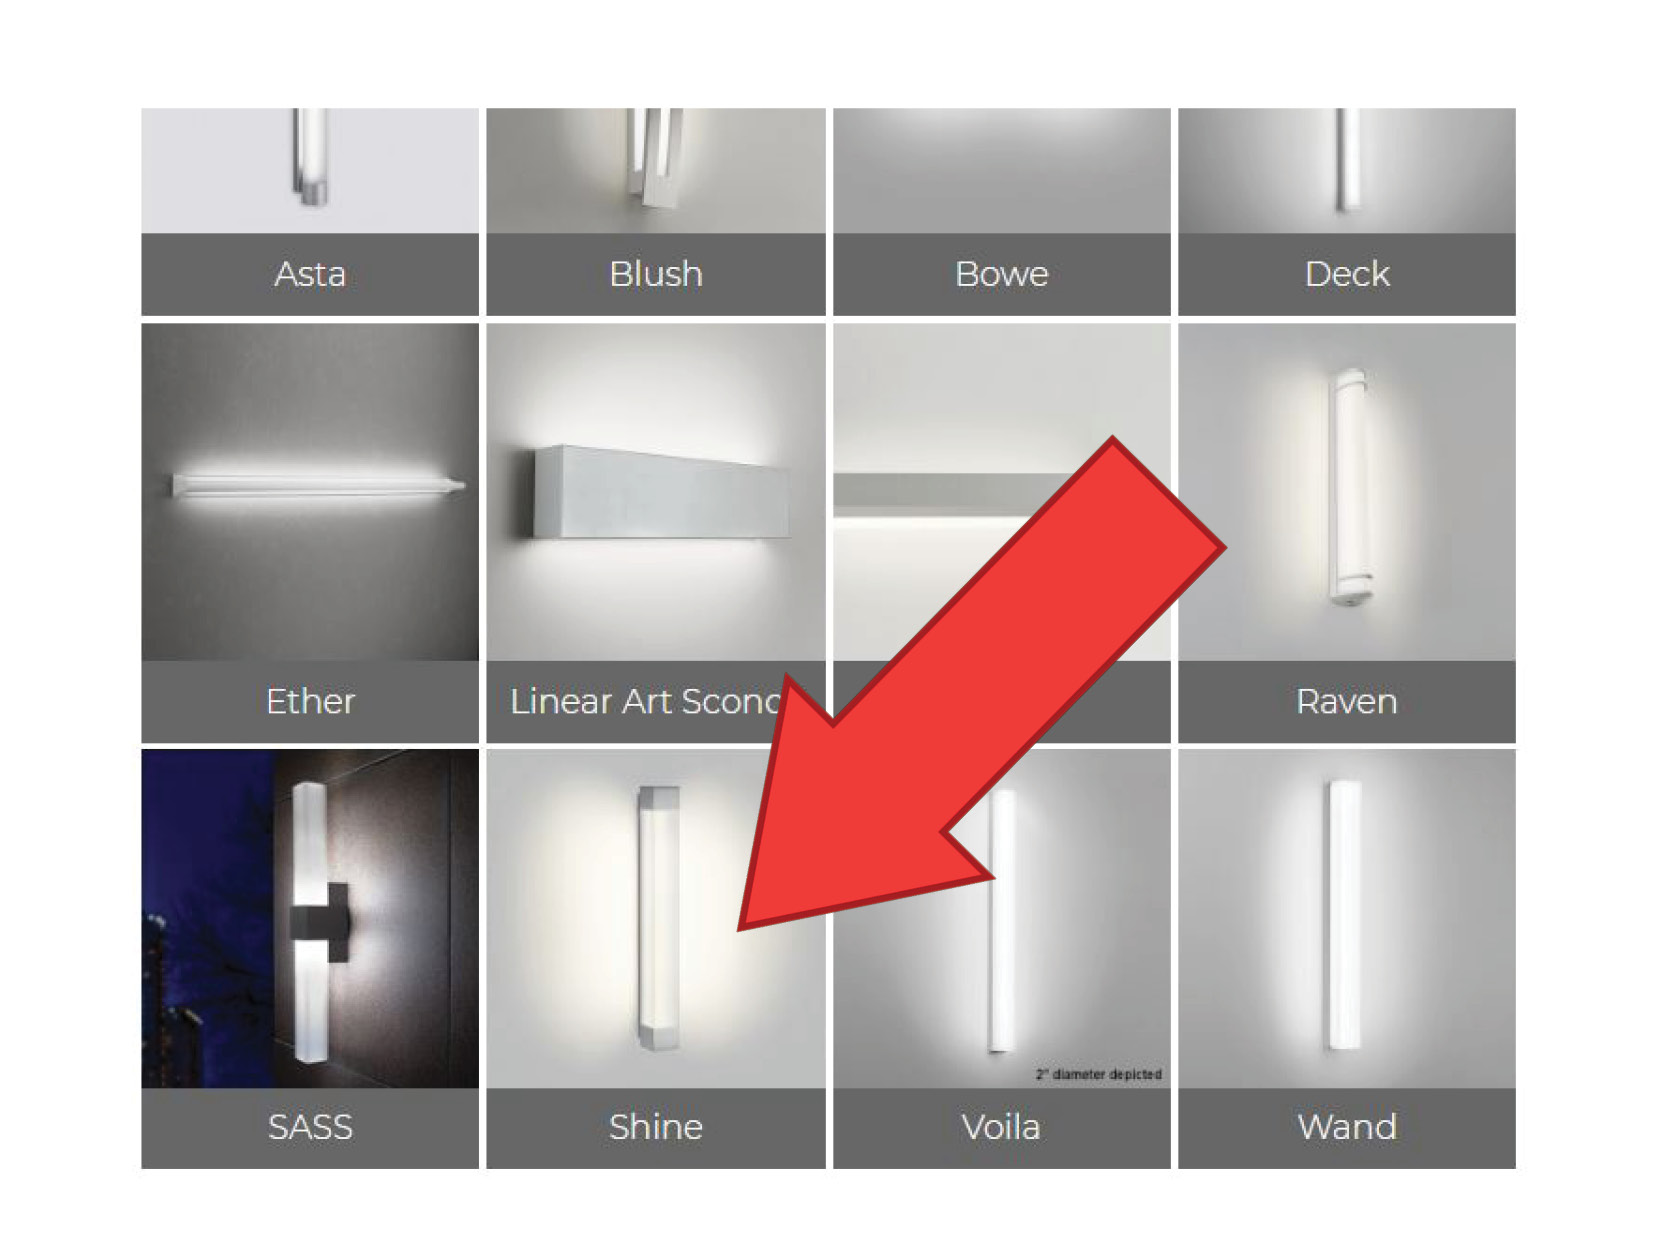 All Visa Lighting products have Sketchup lighting and Revit lighting families, shown here in a grid